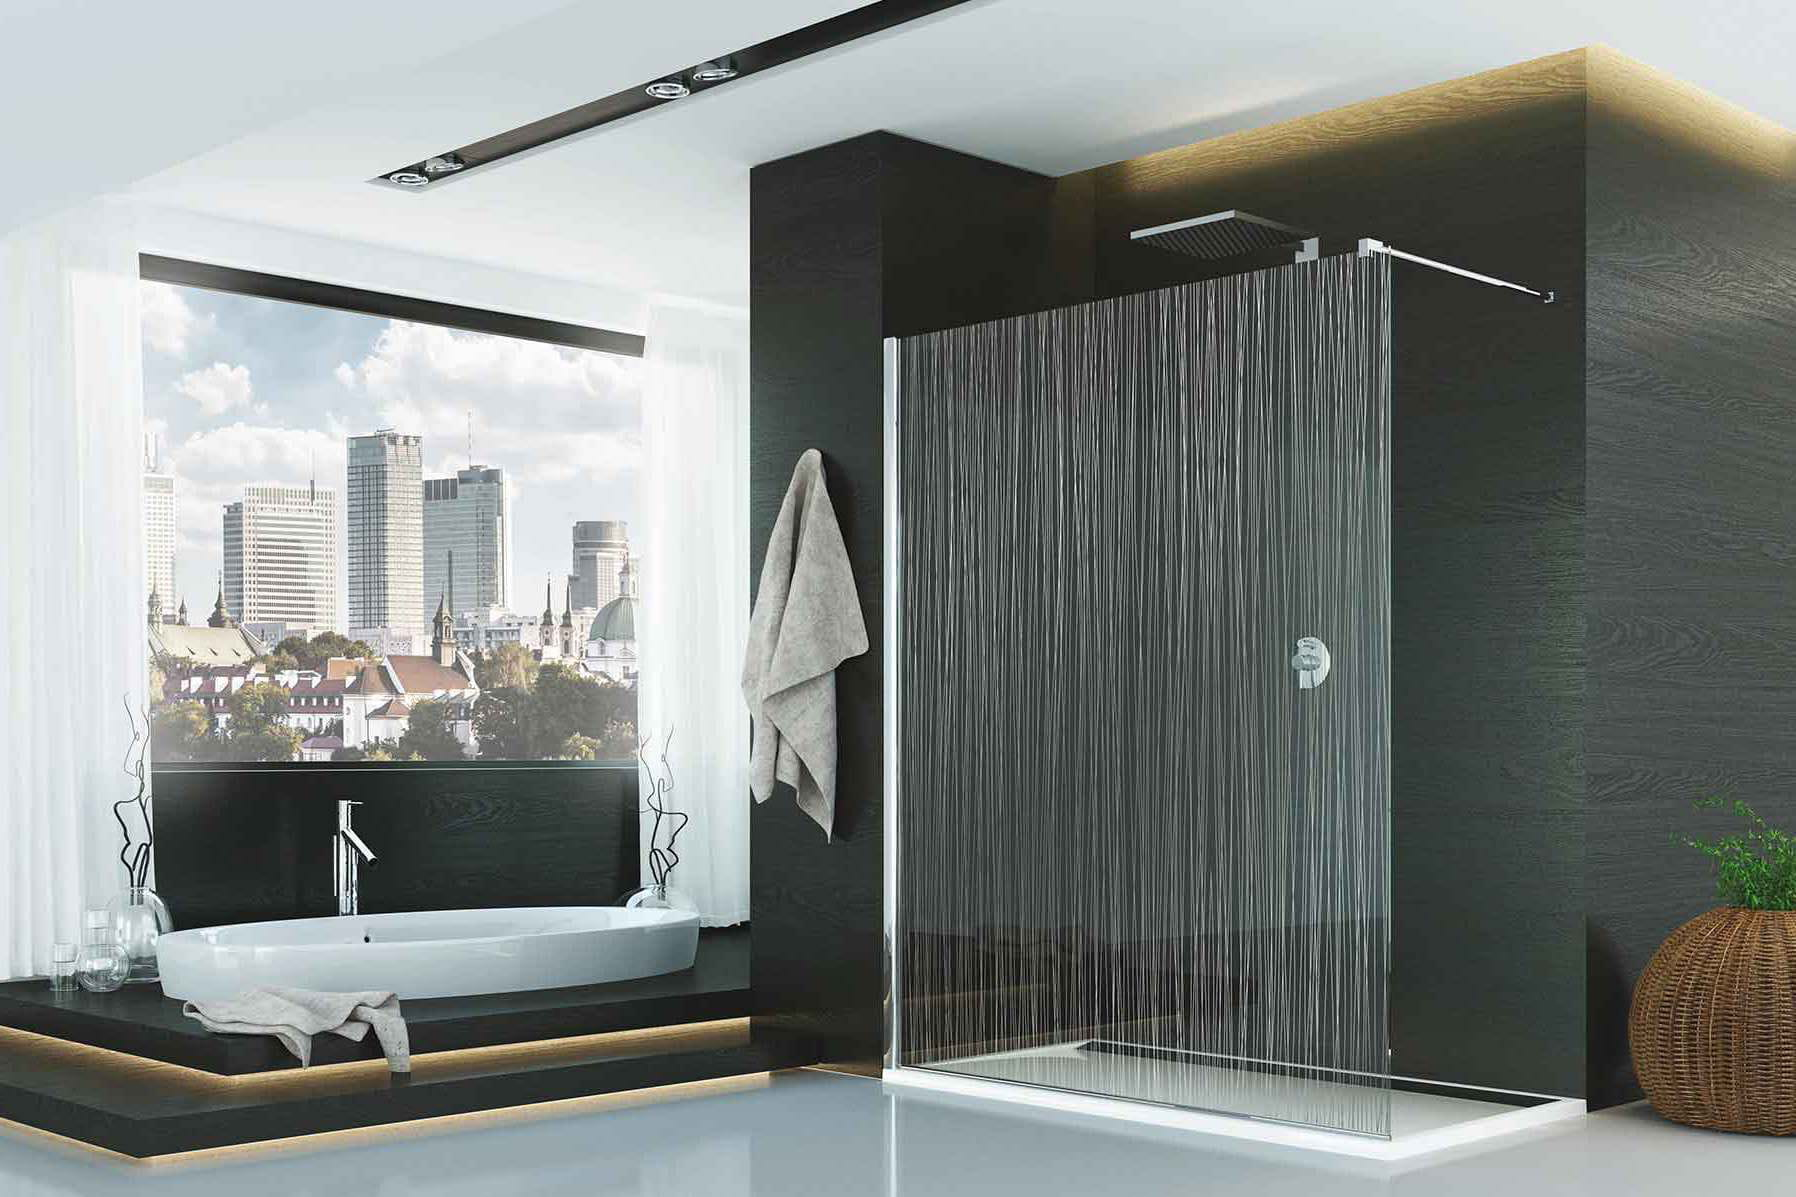 salle de bain originale italienne. Black Bedroom Furniture Sets. Home Design Ideas